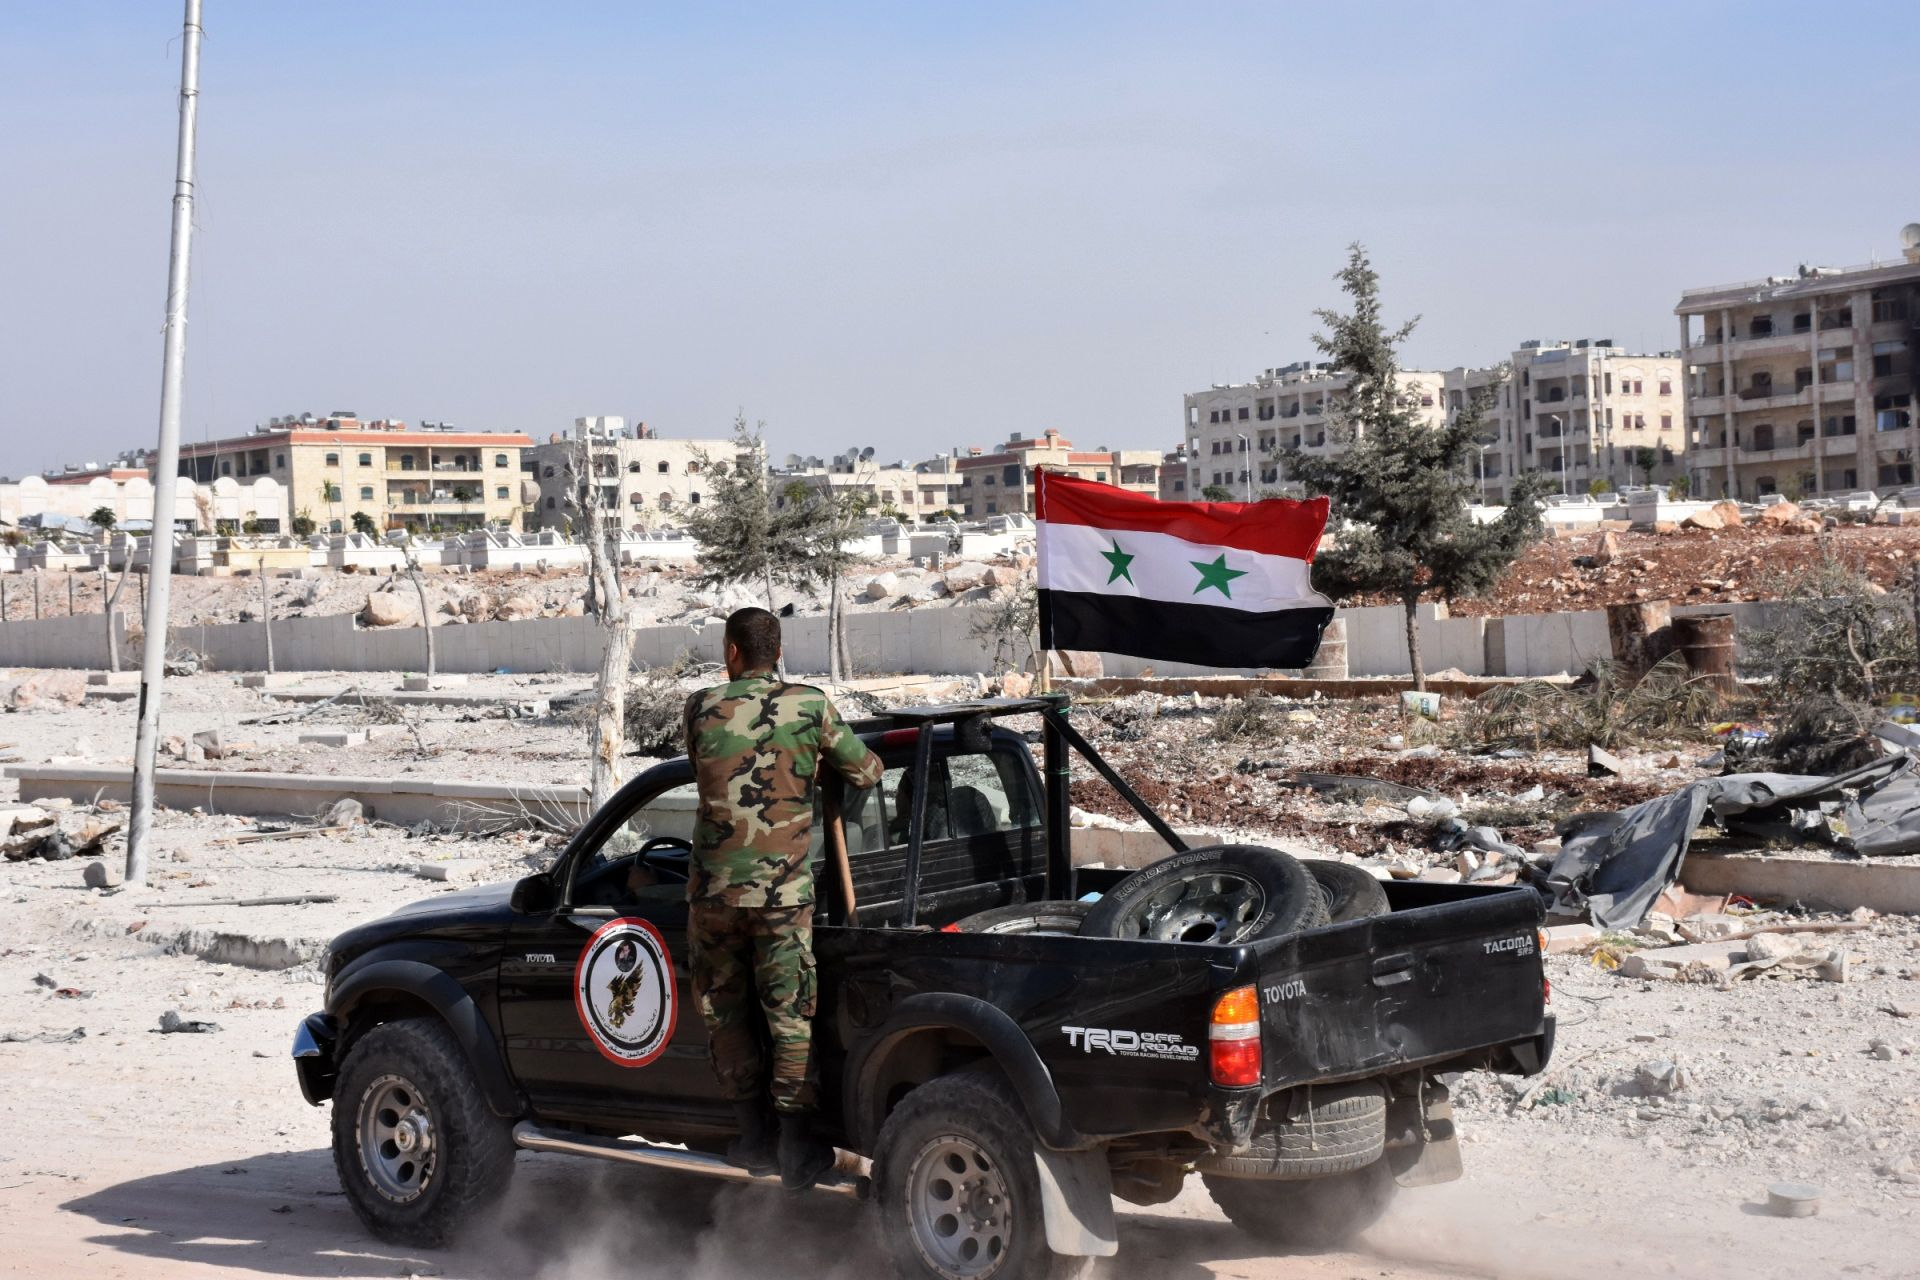 Syrian army vehicle